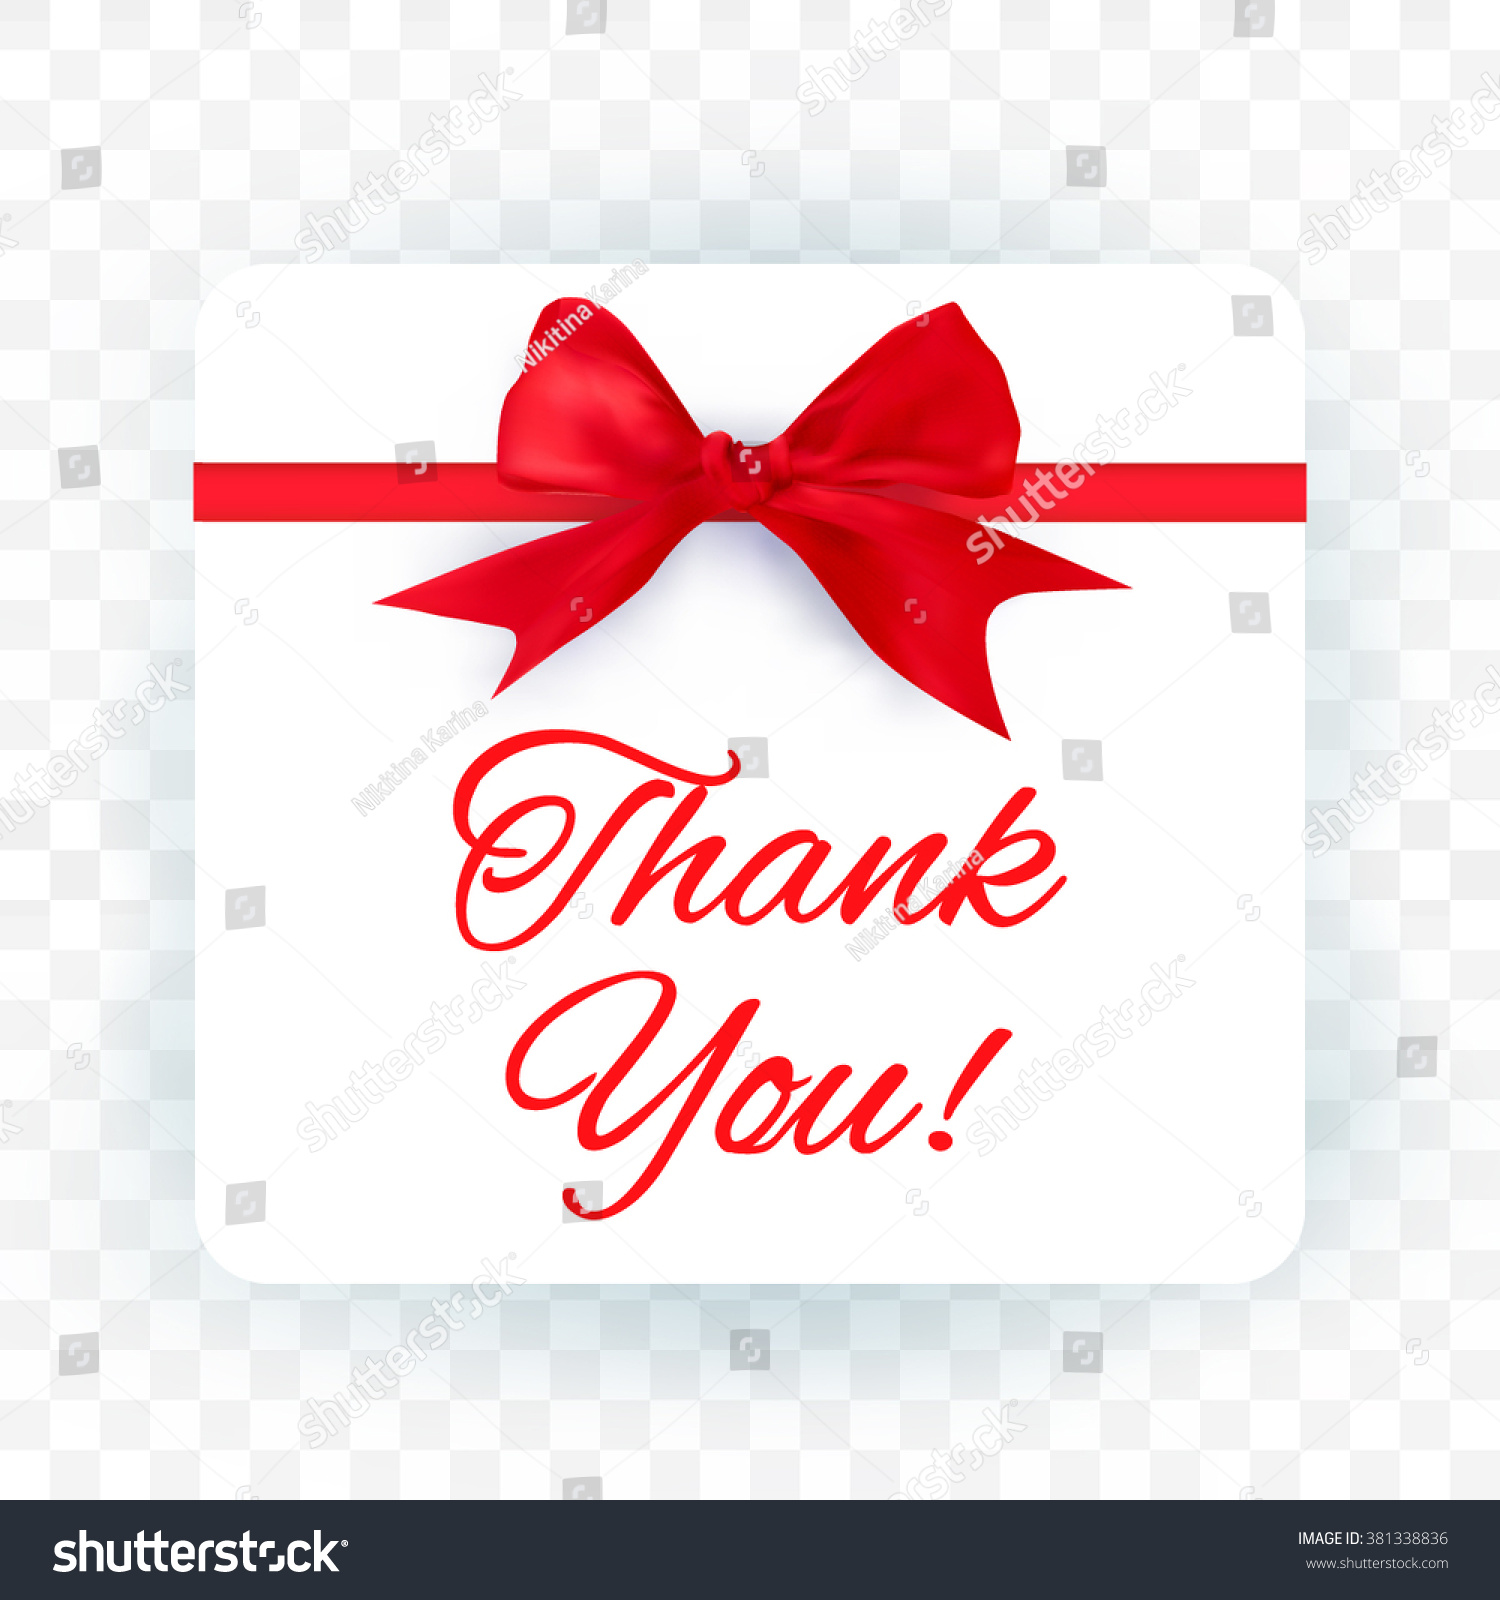 Thank you card realistic red bow stock vector 381338836 shutterstock thank you card with realistic red bow on transparent background kristyandbryce Choice Image